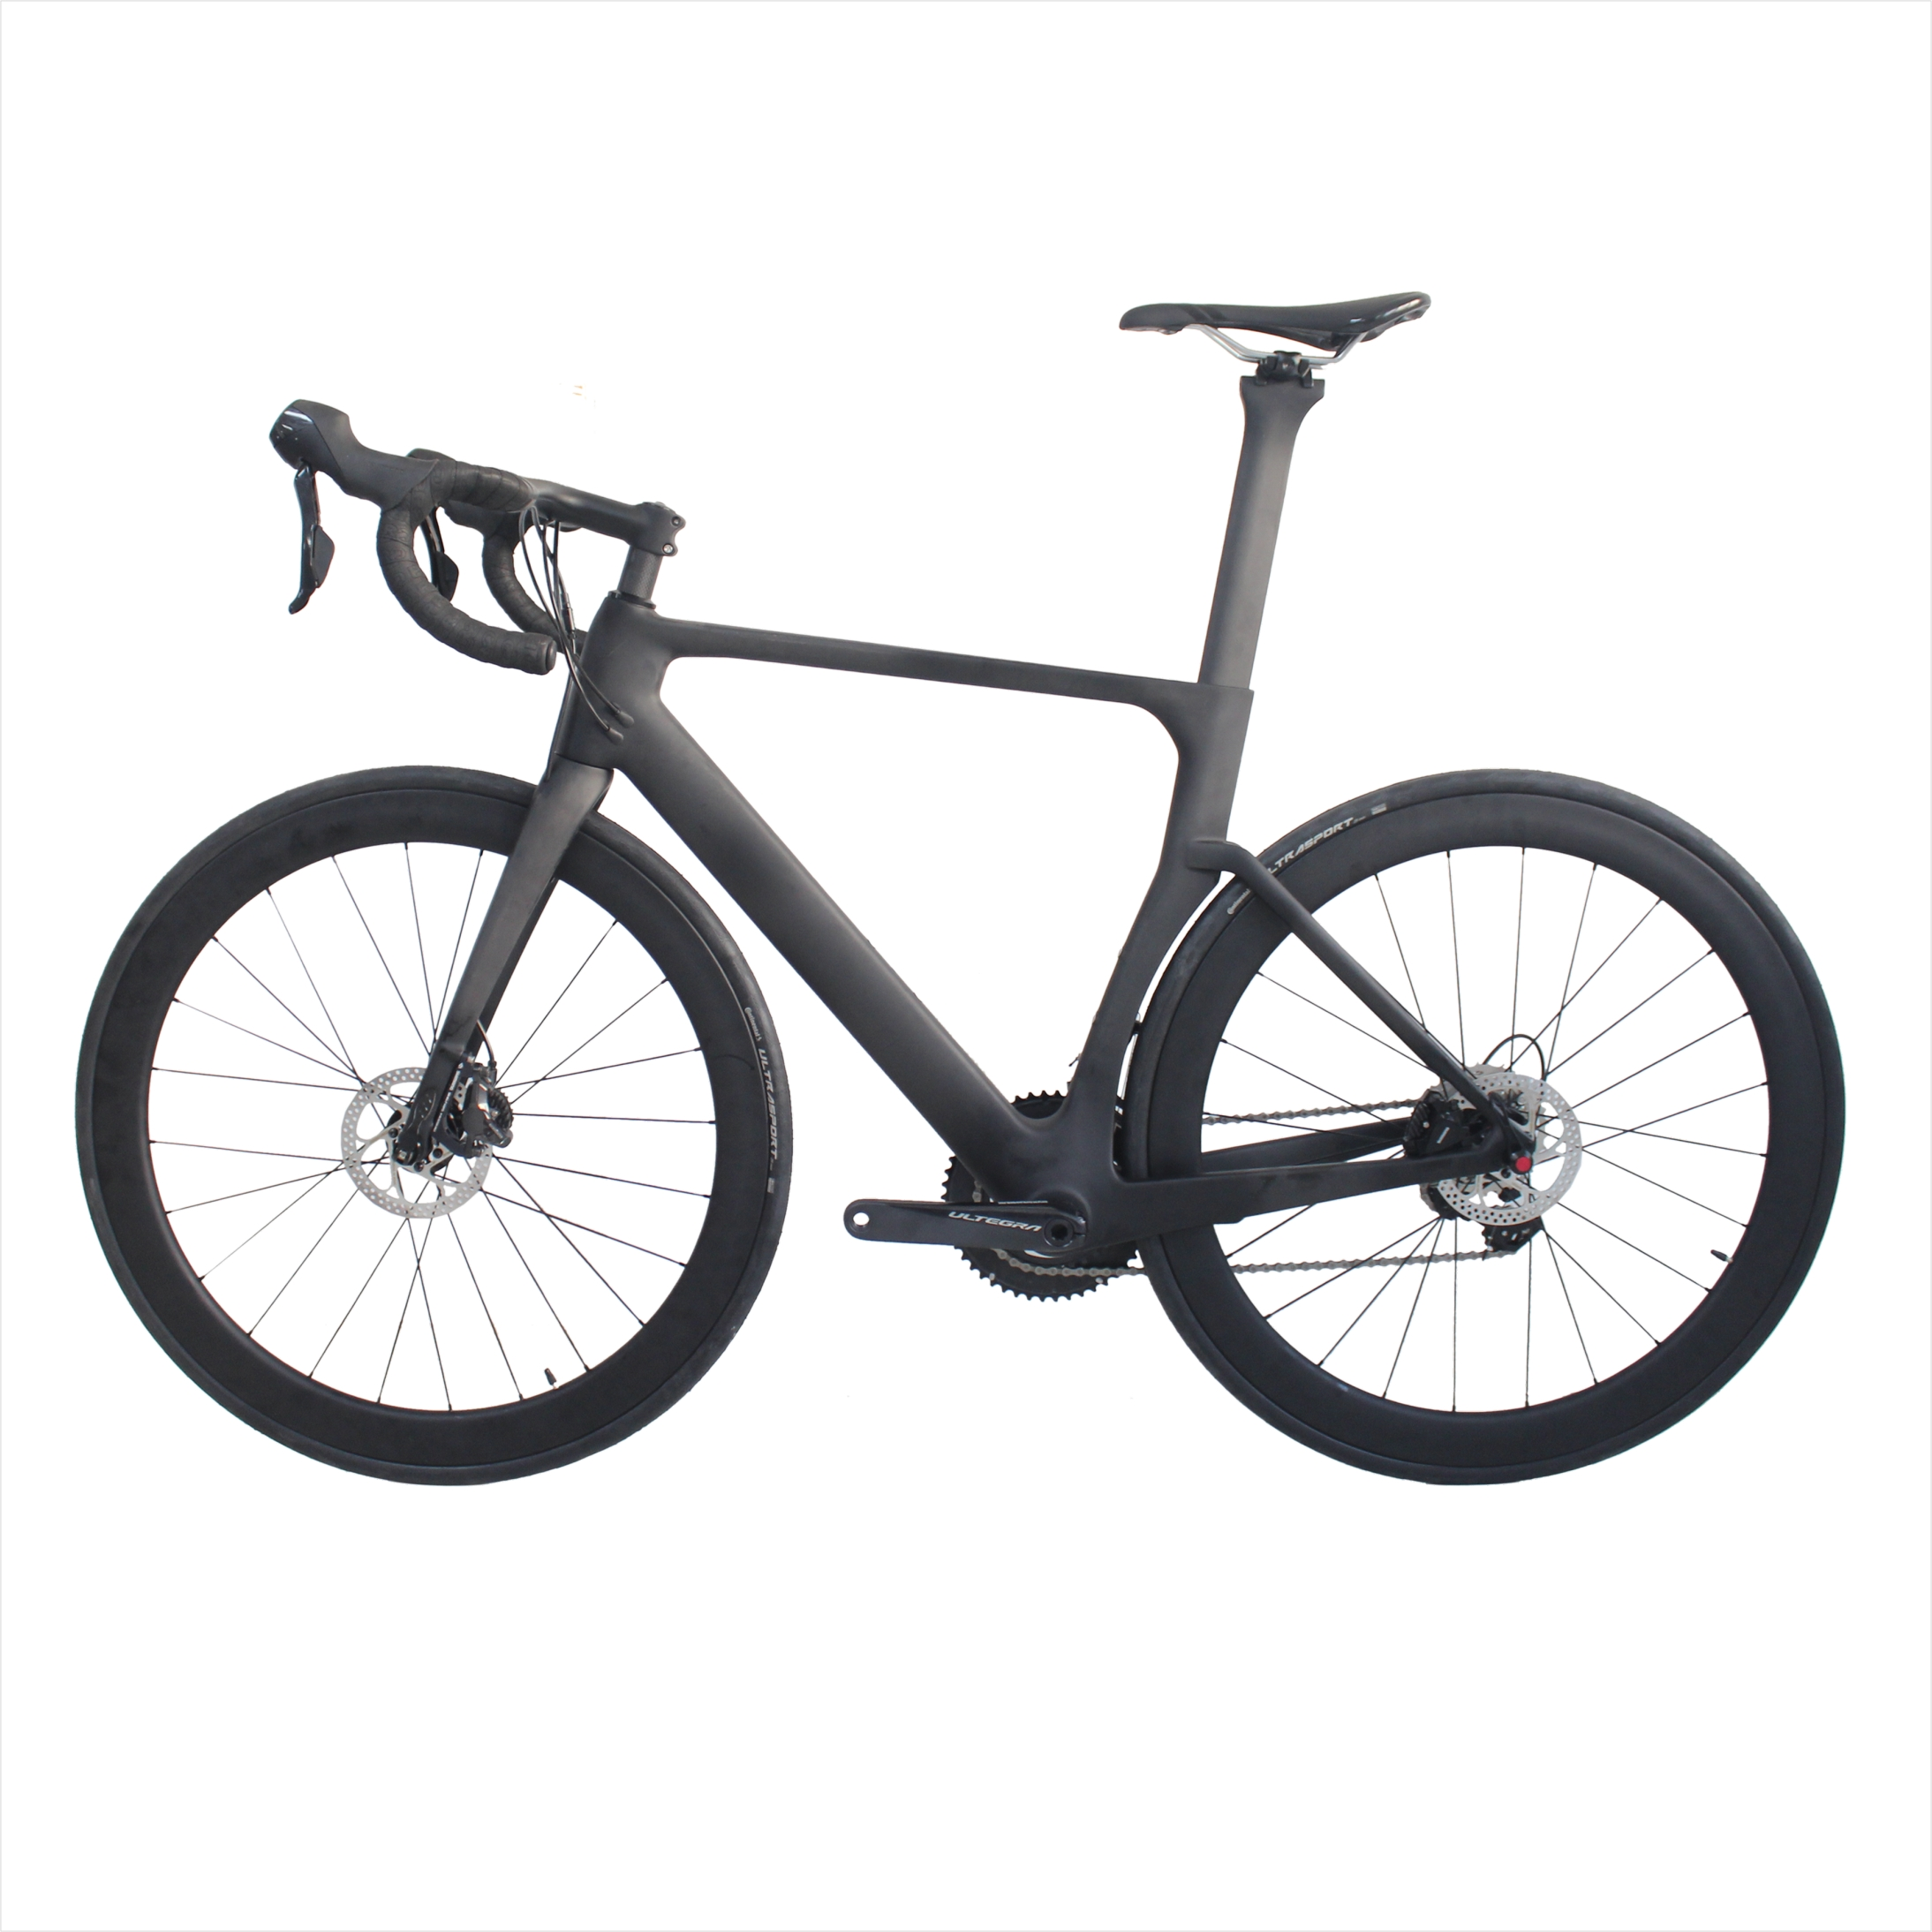 RD525 Aero Disc Road carbon frame road <font><b>bike</b></font> complete R8050 Di2 2*11S 49,52,54,56,58cm OEM products carbon frame full bicycle image